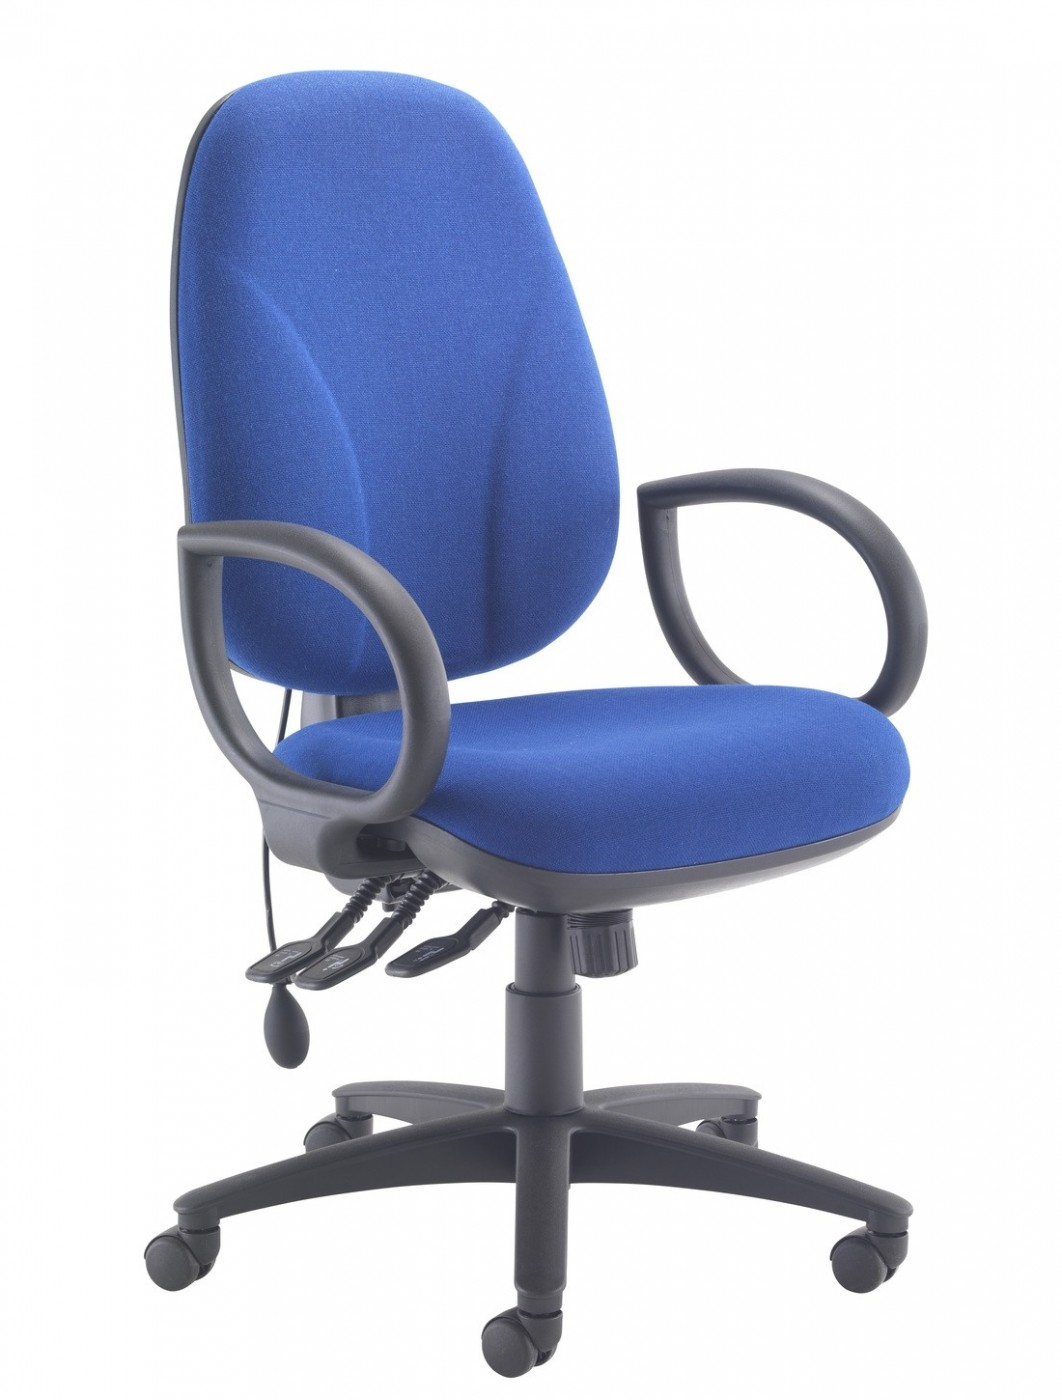 TC Office Concept Maxi Ergo Office Chair CH0808BL In Royal Blue   Enlarged  View